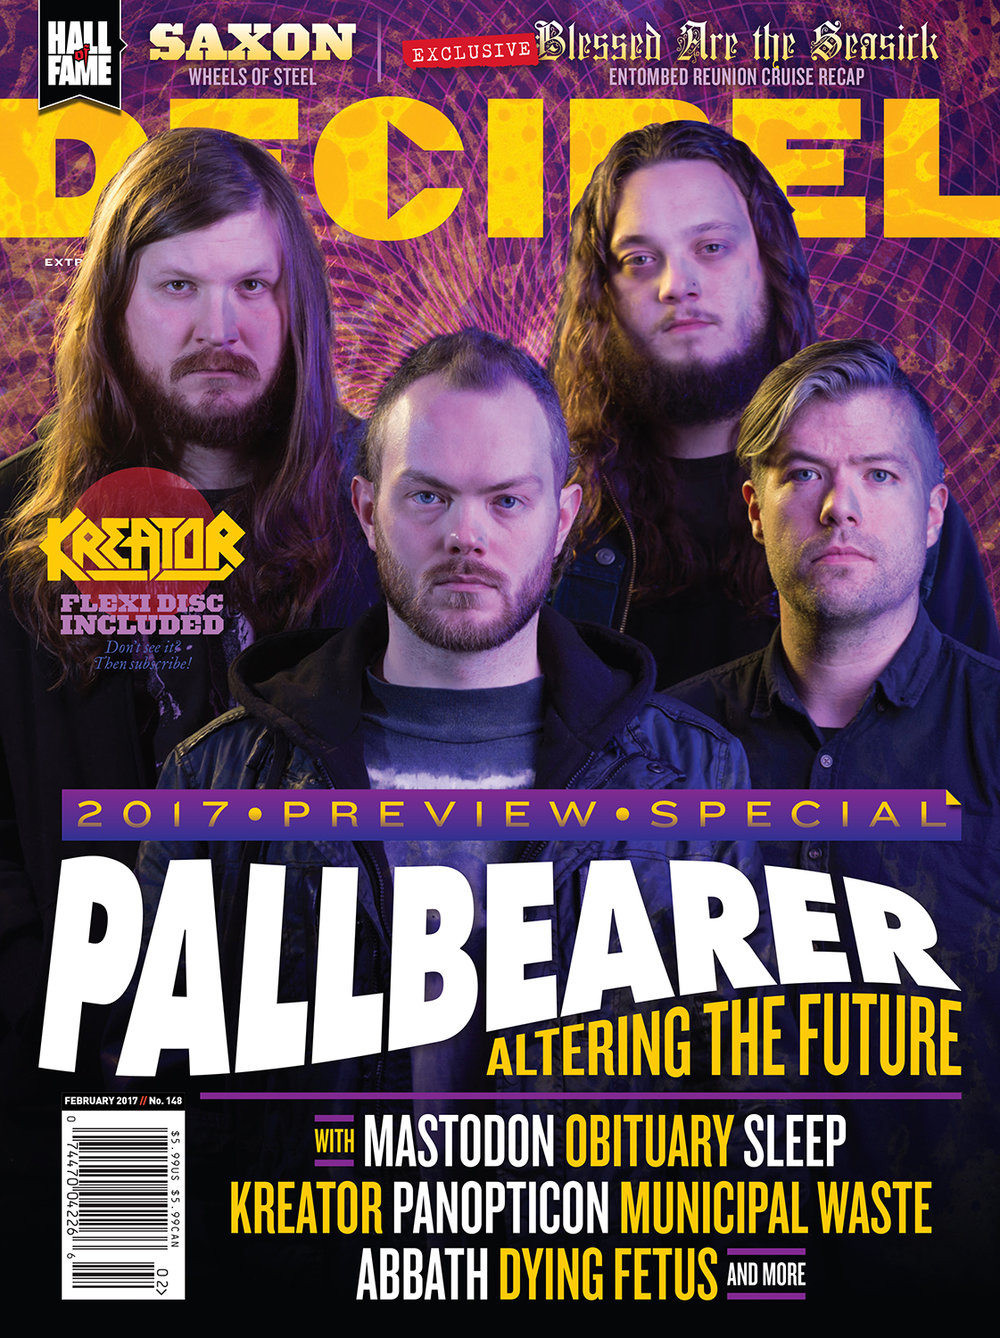 Decibel #147 - February 2017 - Pallbearer